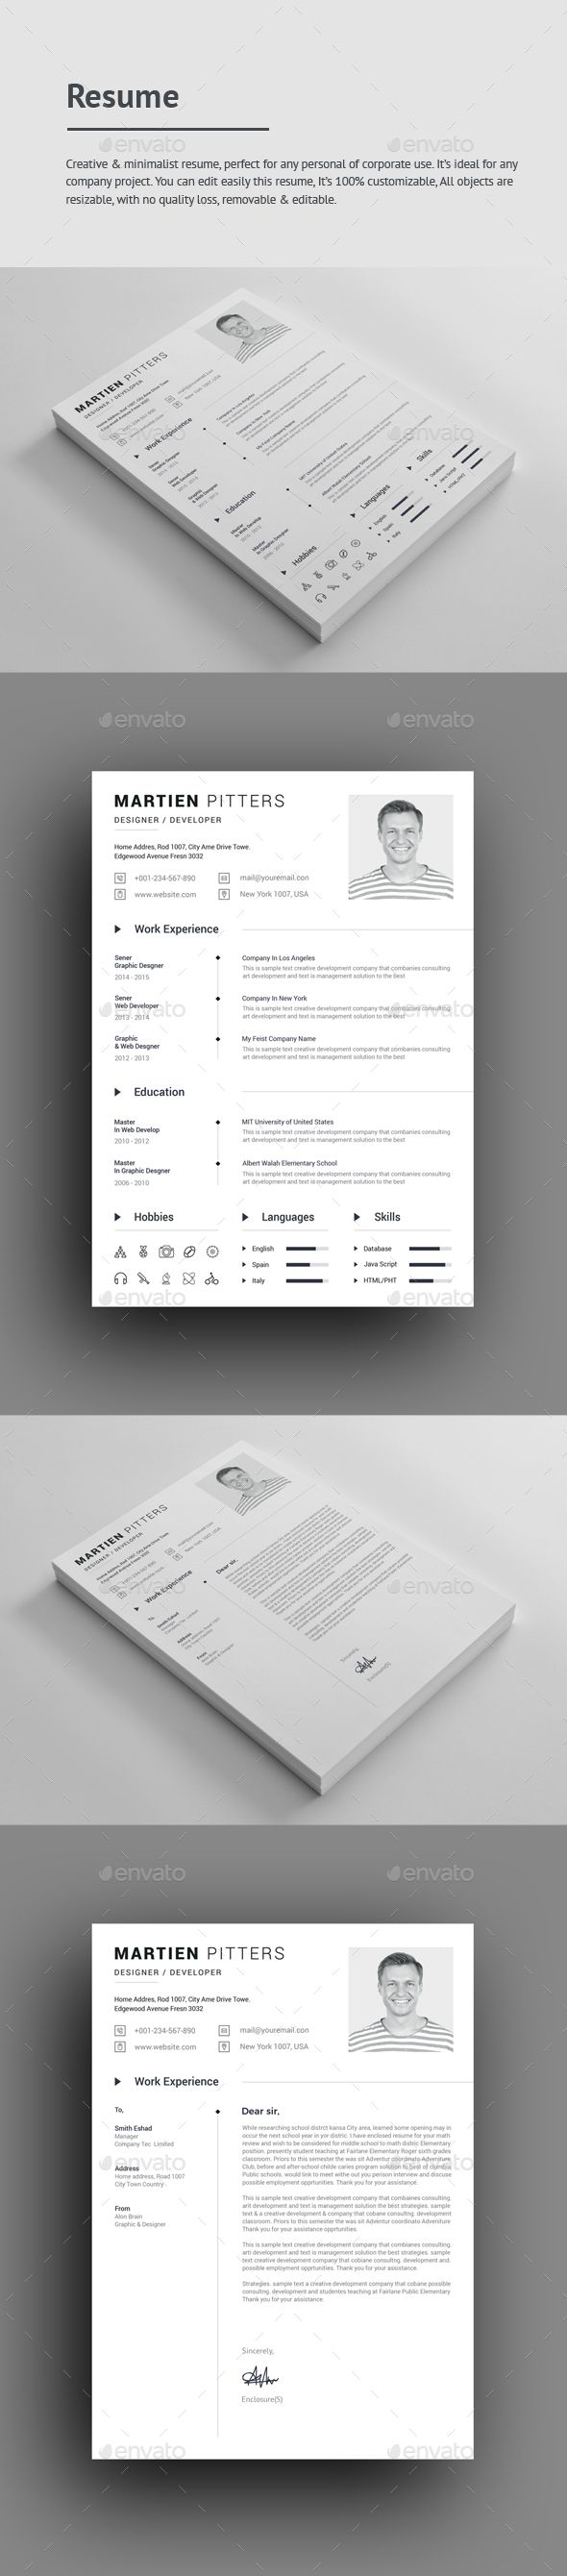 printable resume format%0A File Information Size print dimension with bleed   guidelines  well layered  organised  PSD